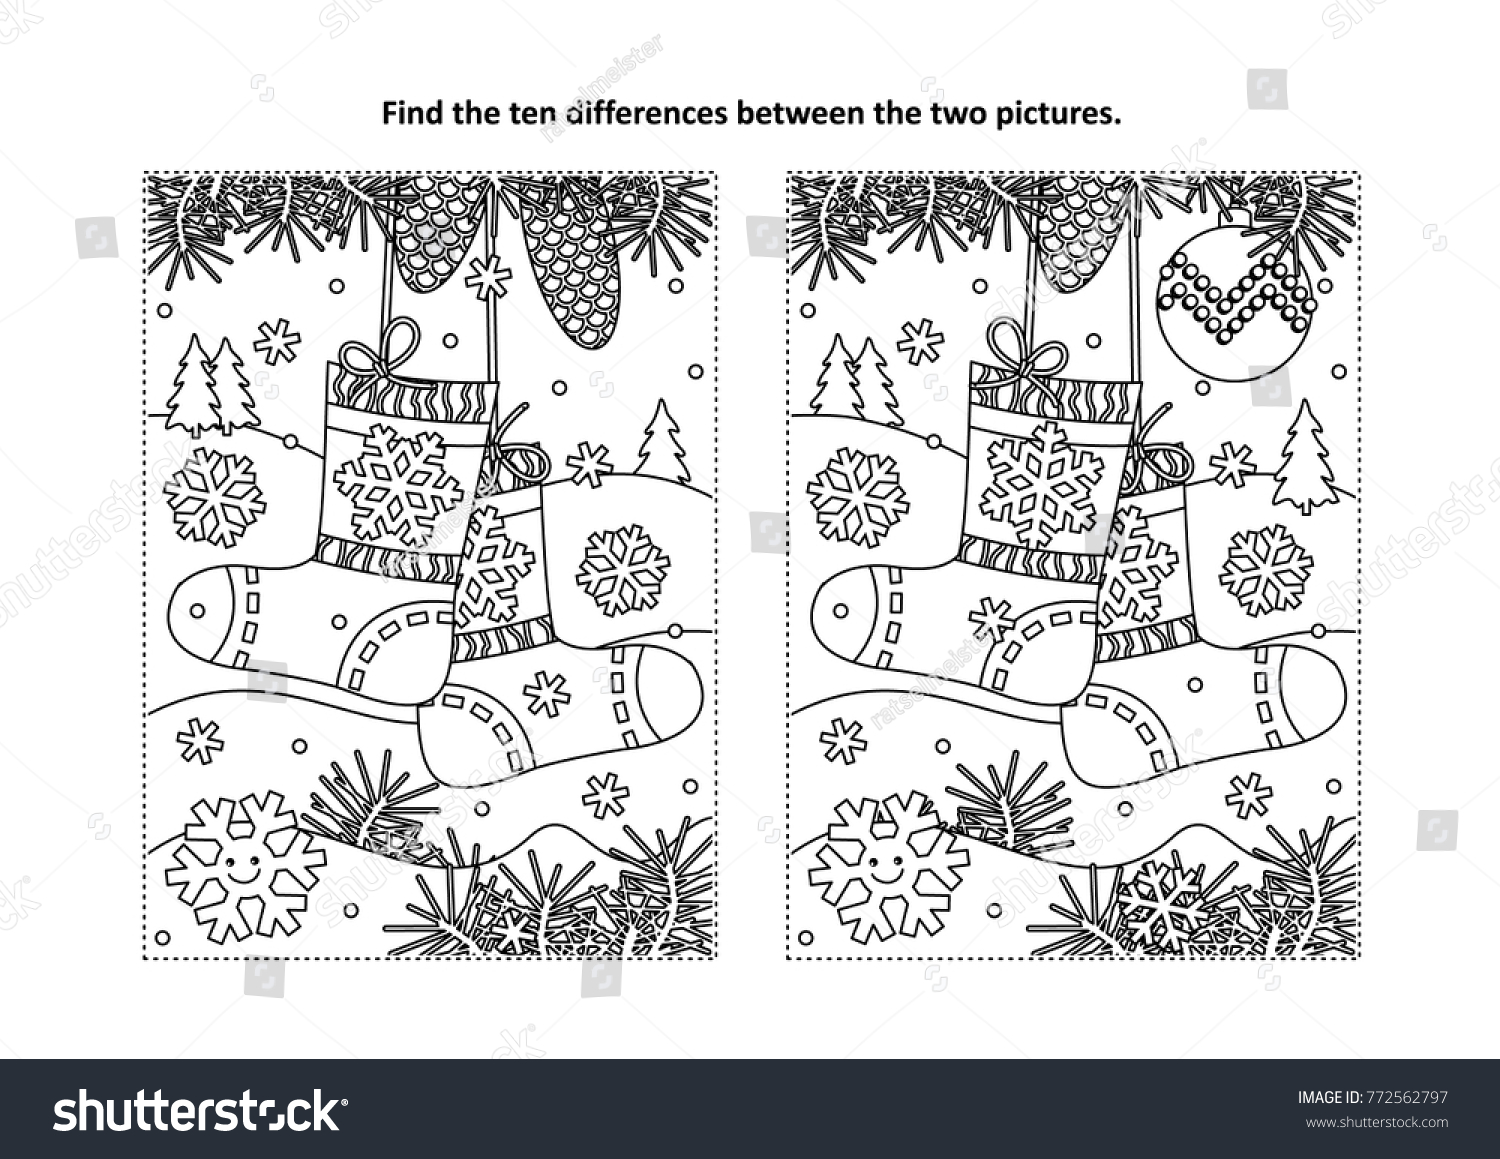 Winter New Year Or Christmas Themed Find The Ten Differences Picture Puzzle And Coloring Page